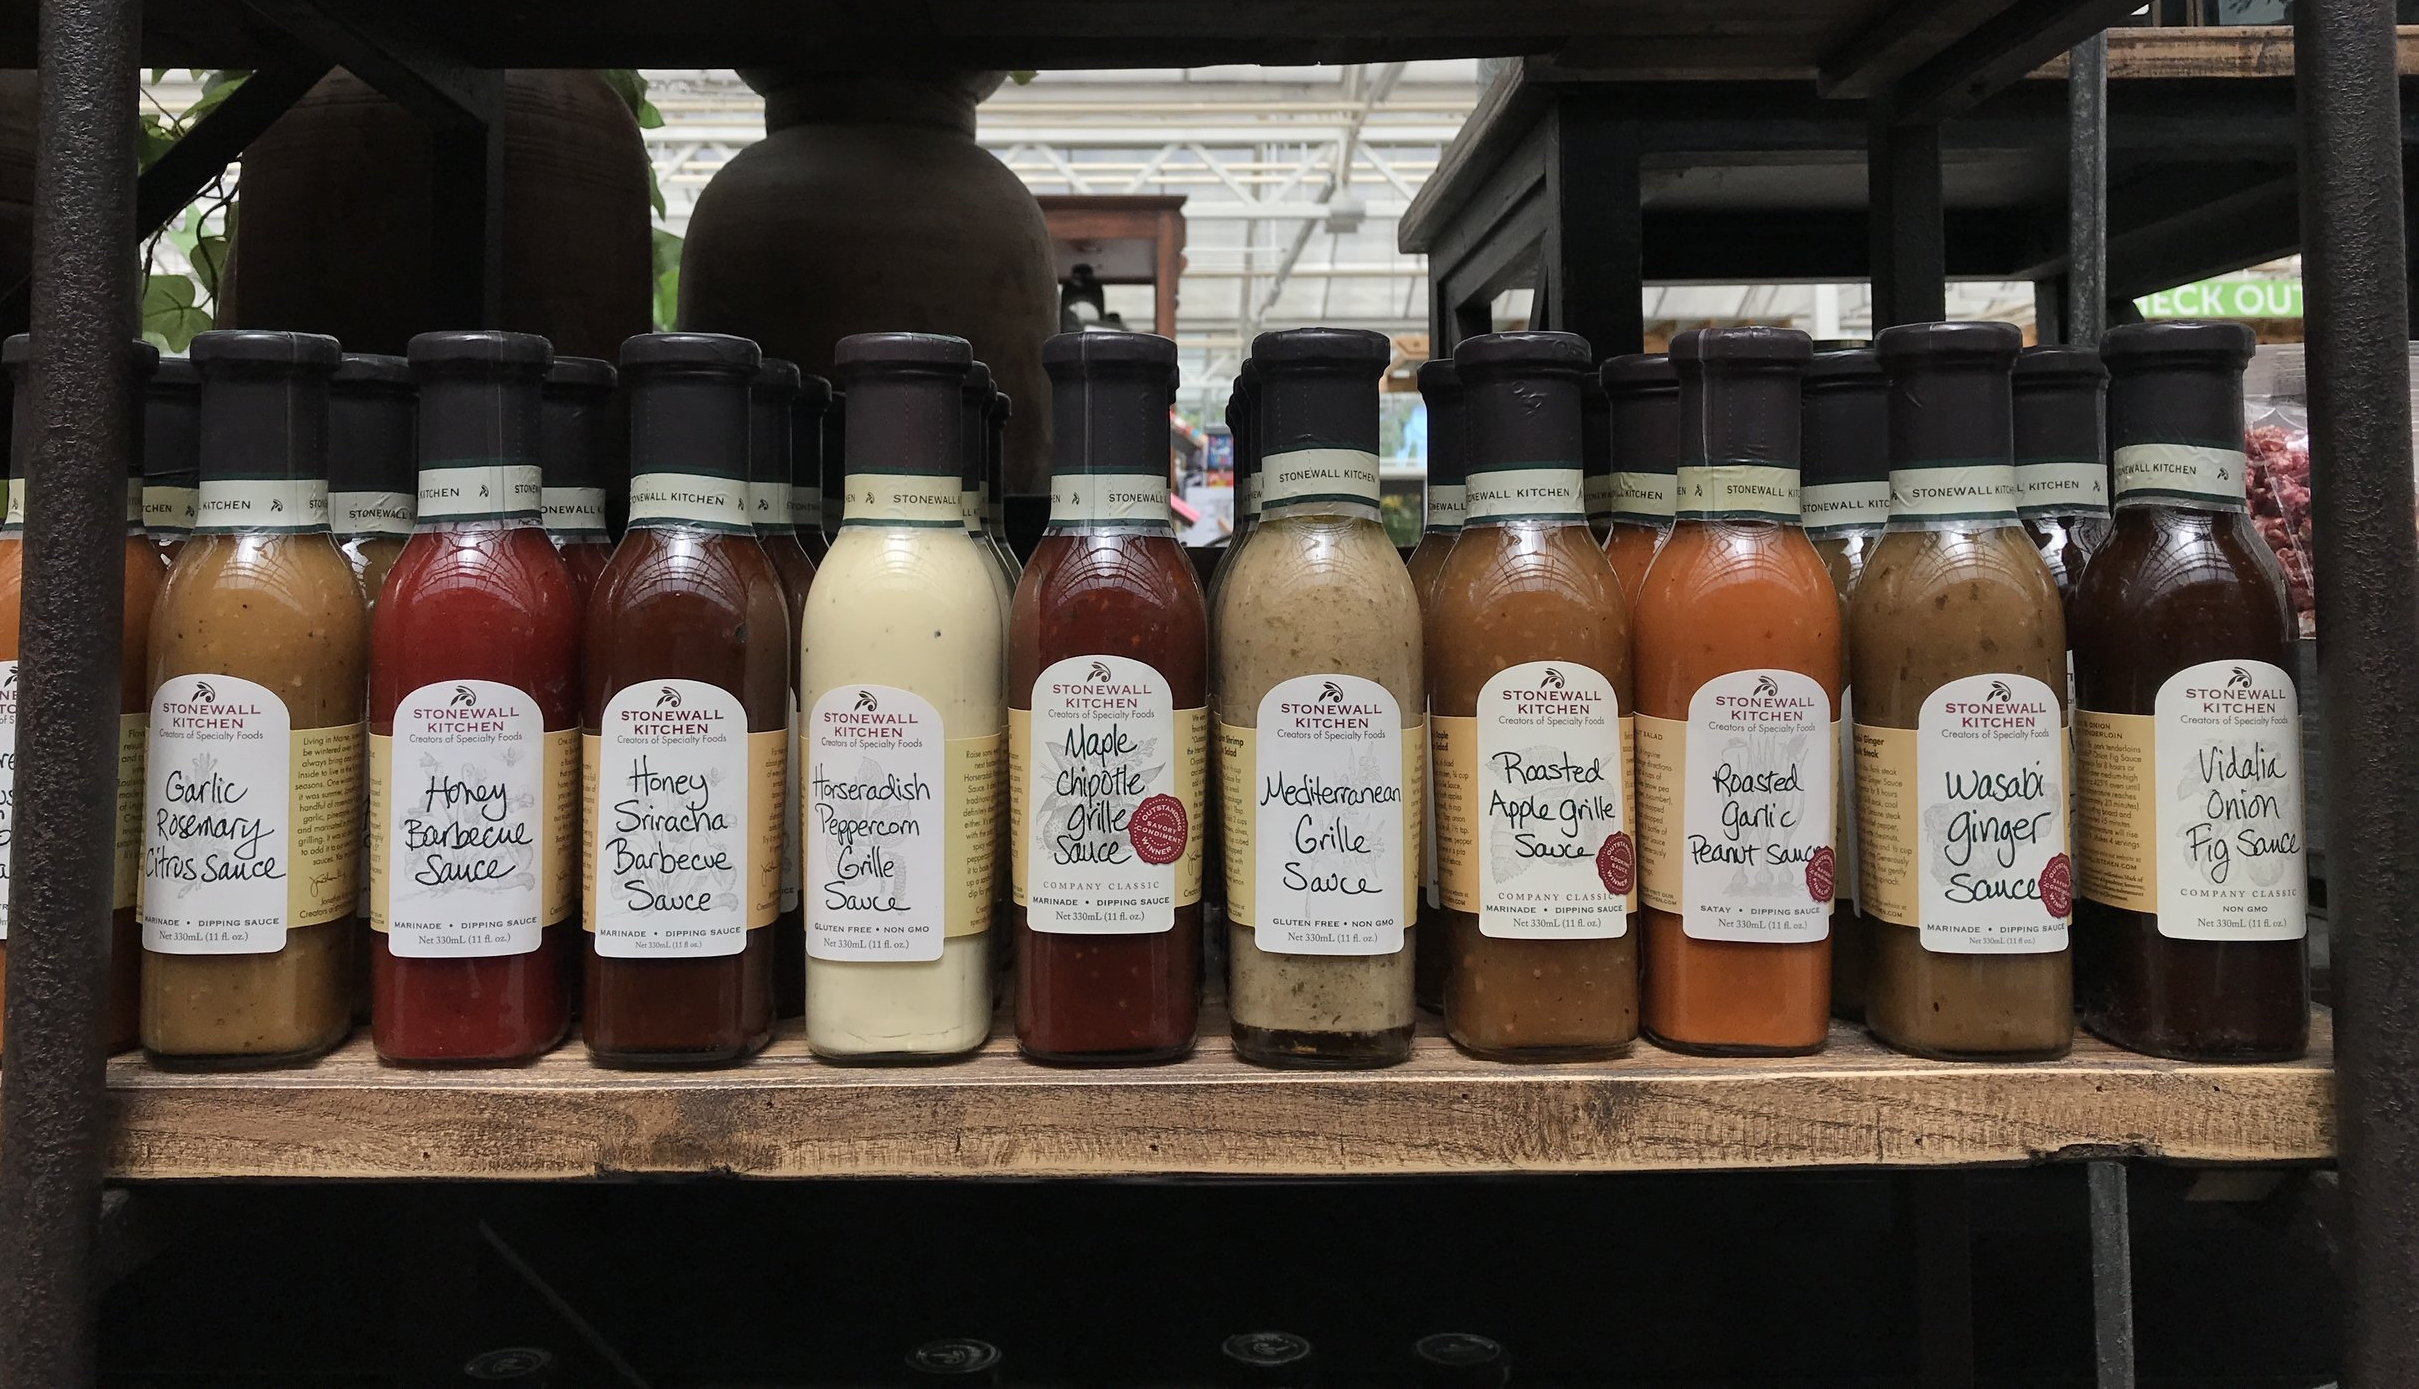 Stonewall Kitchen Grill Sauces starting at $8.00.